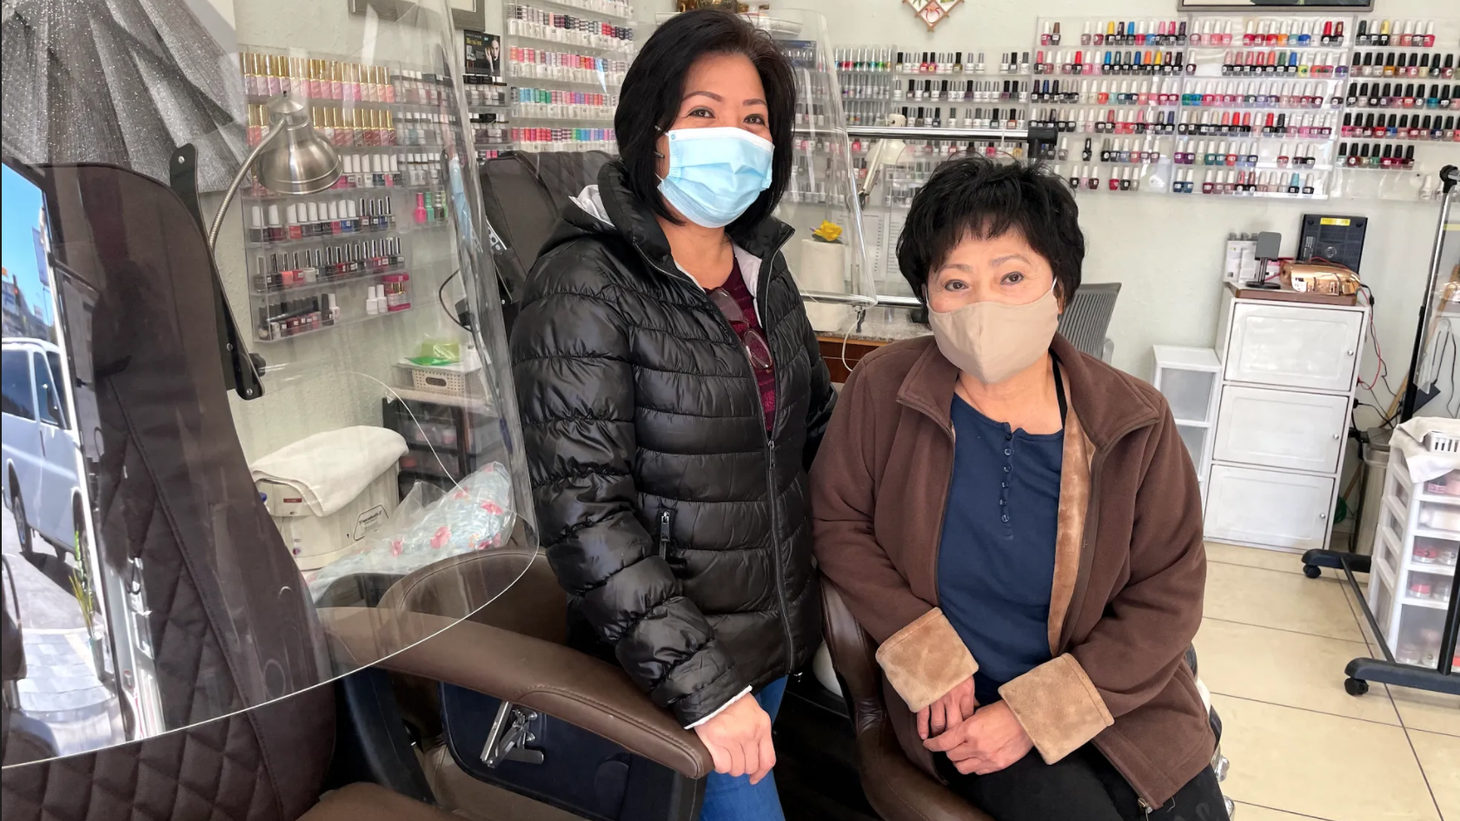 Sandy Lam (left) and her cousin Mai Lam say they have invested thousands of dollars to get their salon ready to reopen in Sherman Oaks.